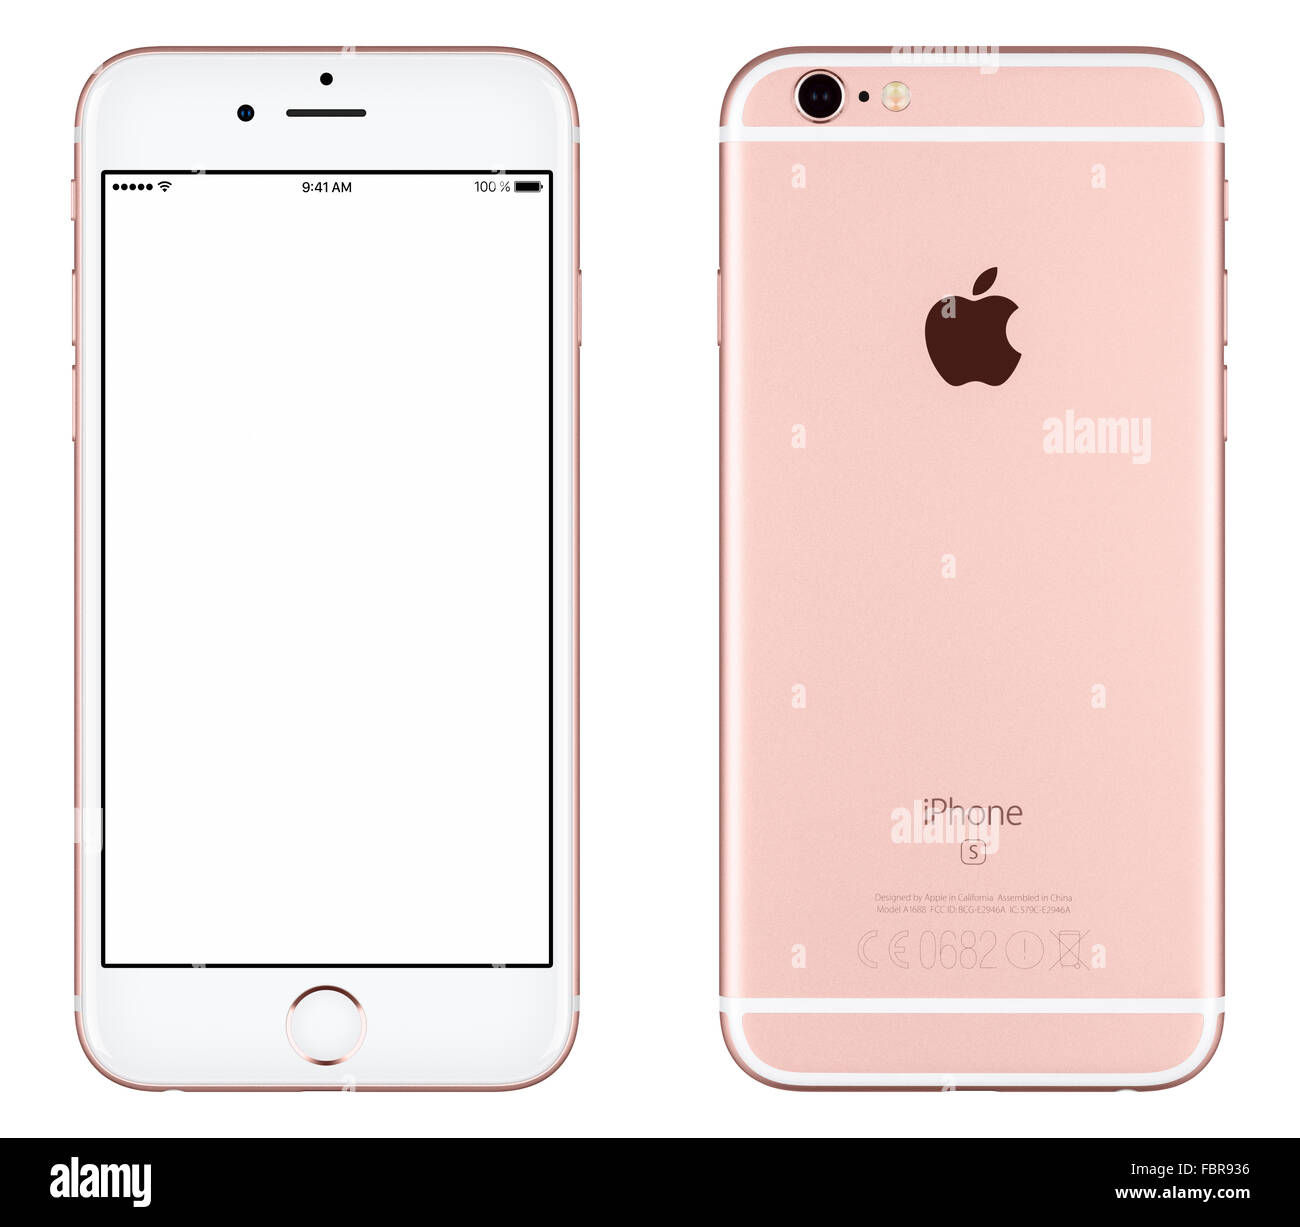 Apple Iphone Stockfotos Apple Iphone Bilder Alamy